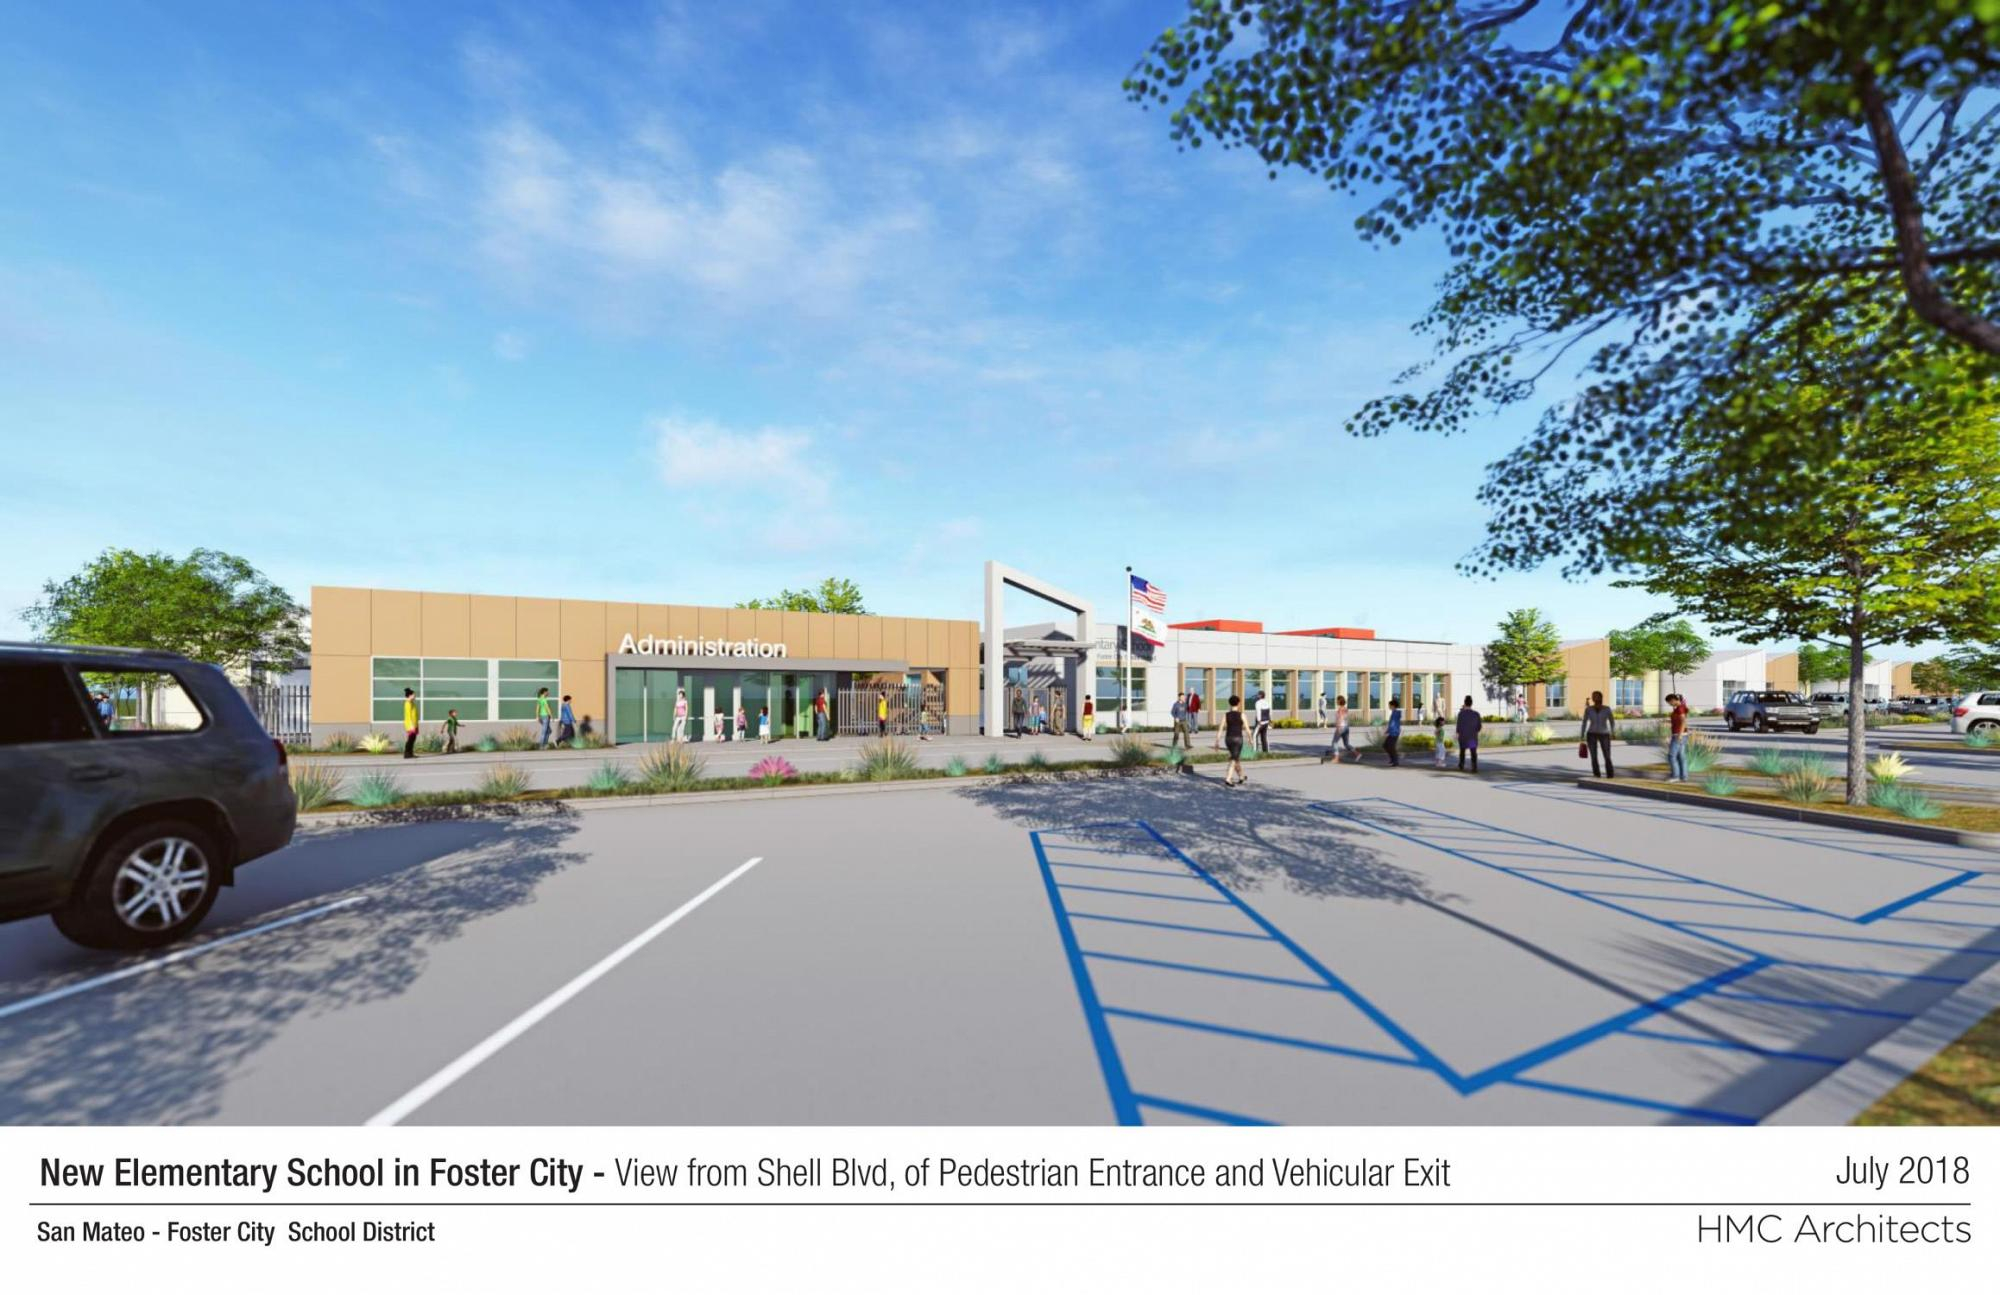 San Mateo Foster City School District - New Elementary Intended For Audubon Calendars 2021 Foster City